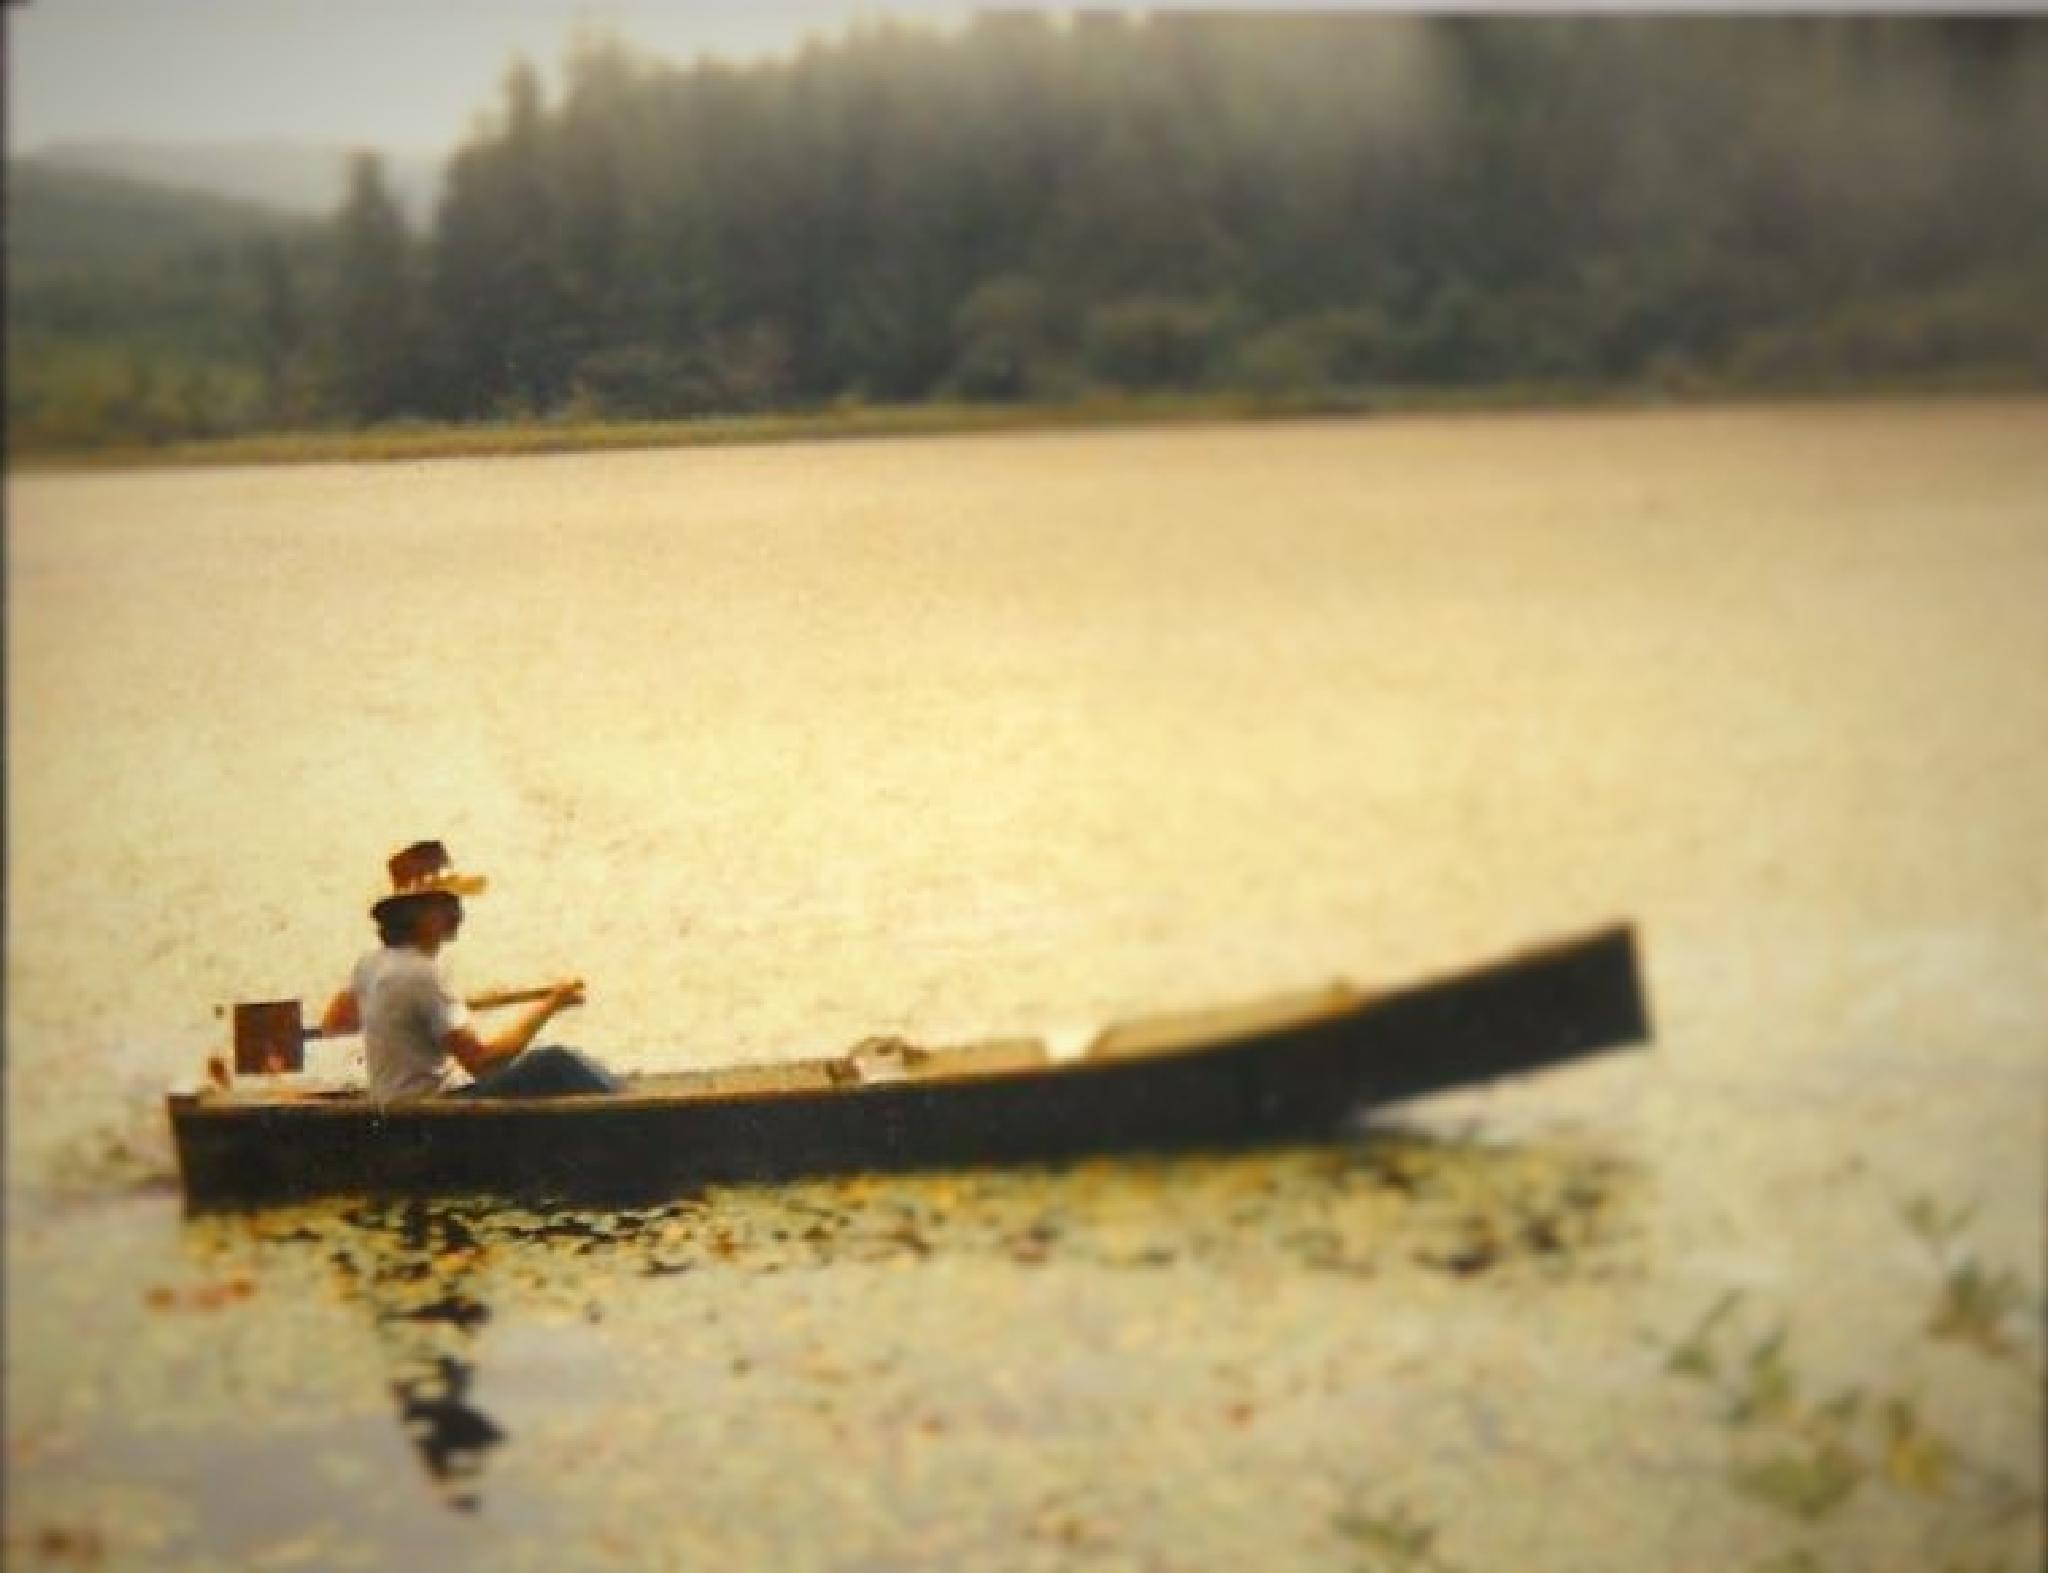 My brother James on a home made water craft on personel lake he named Dickie lake in Wasington sate by Marie Grimm